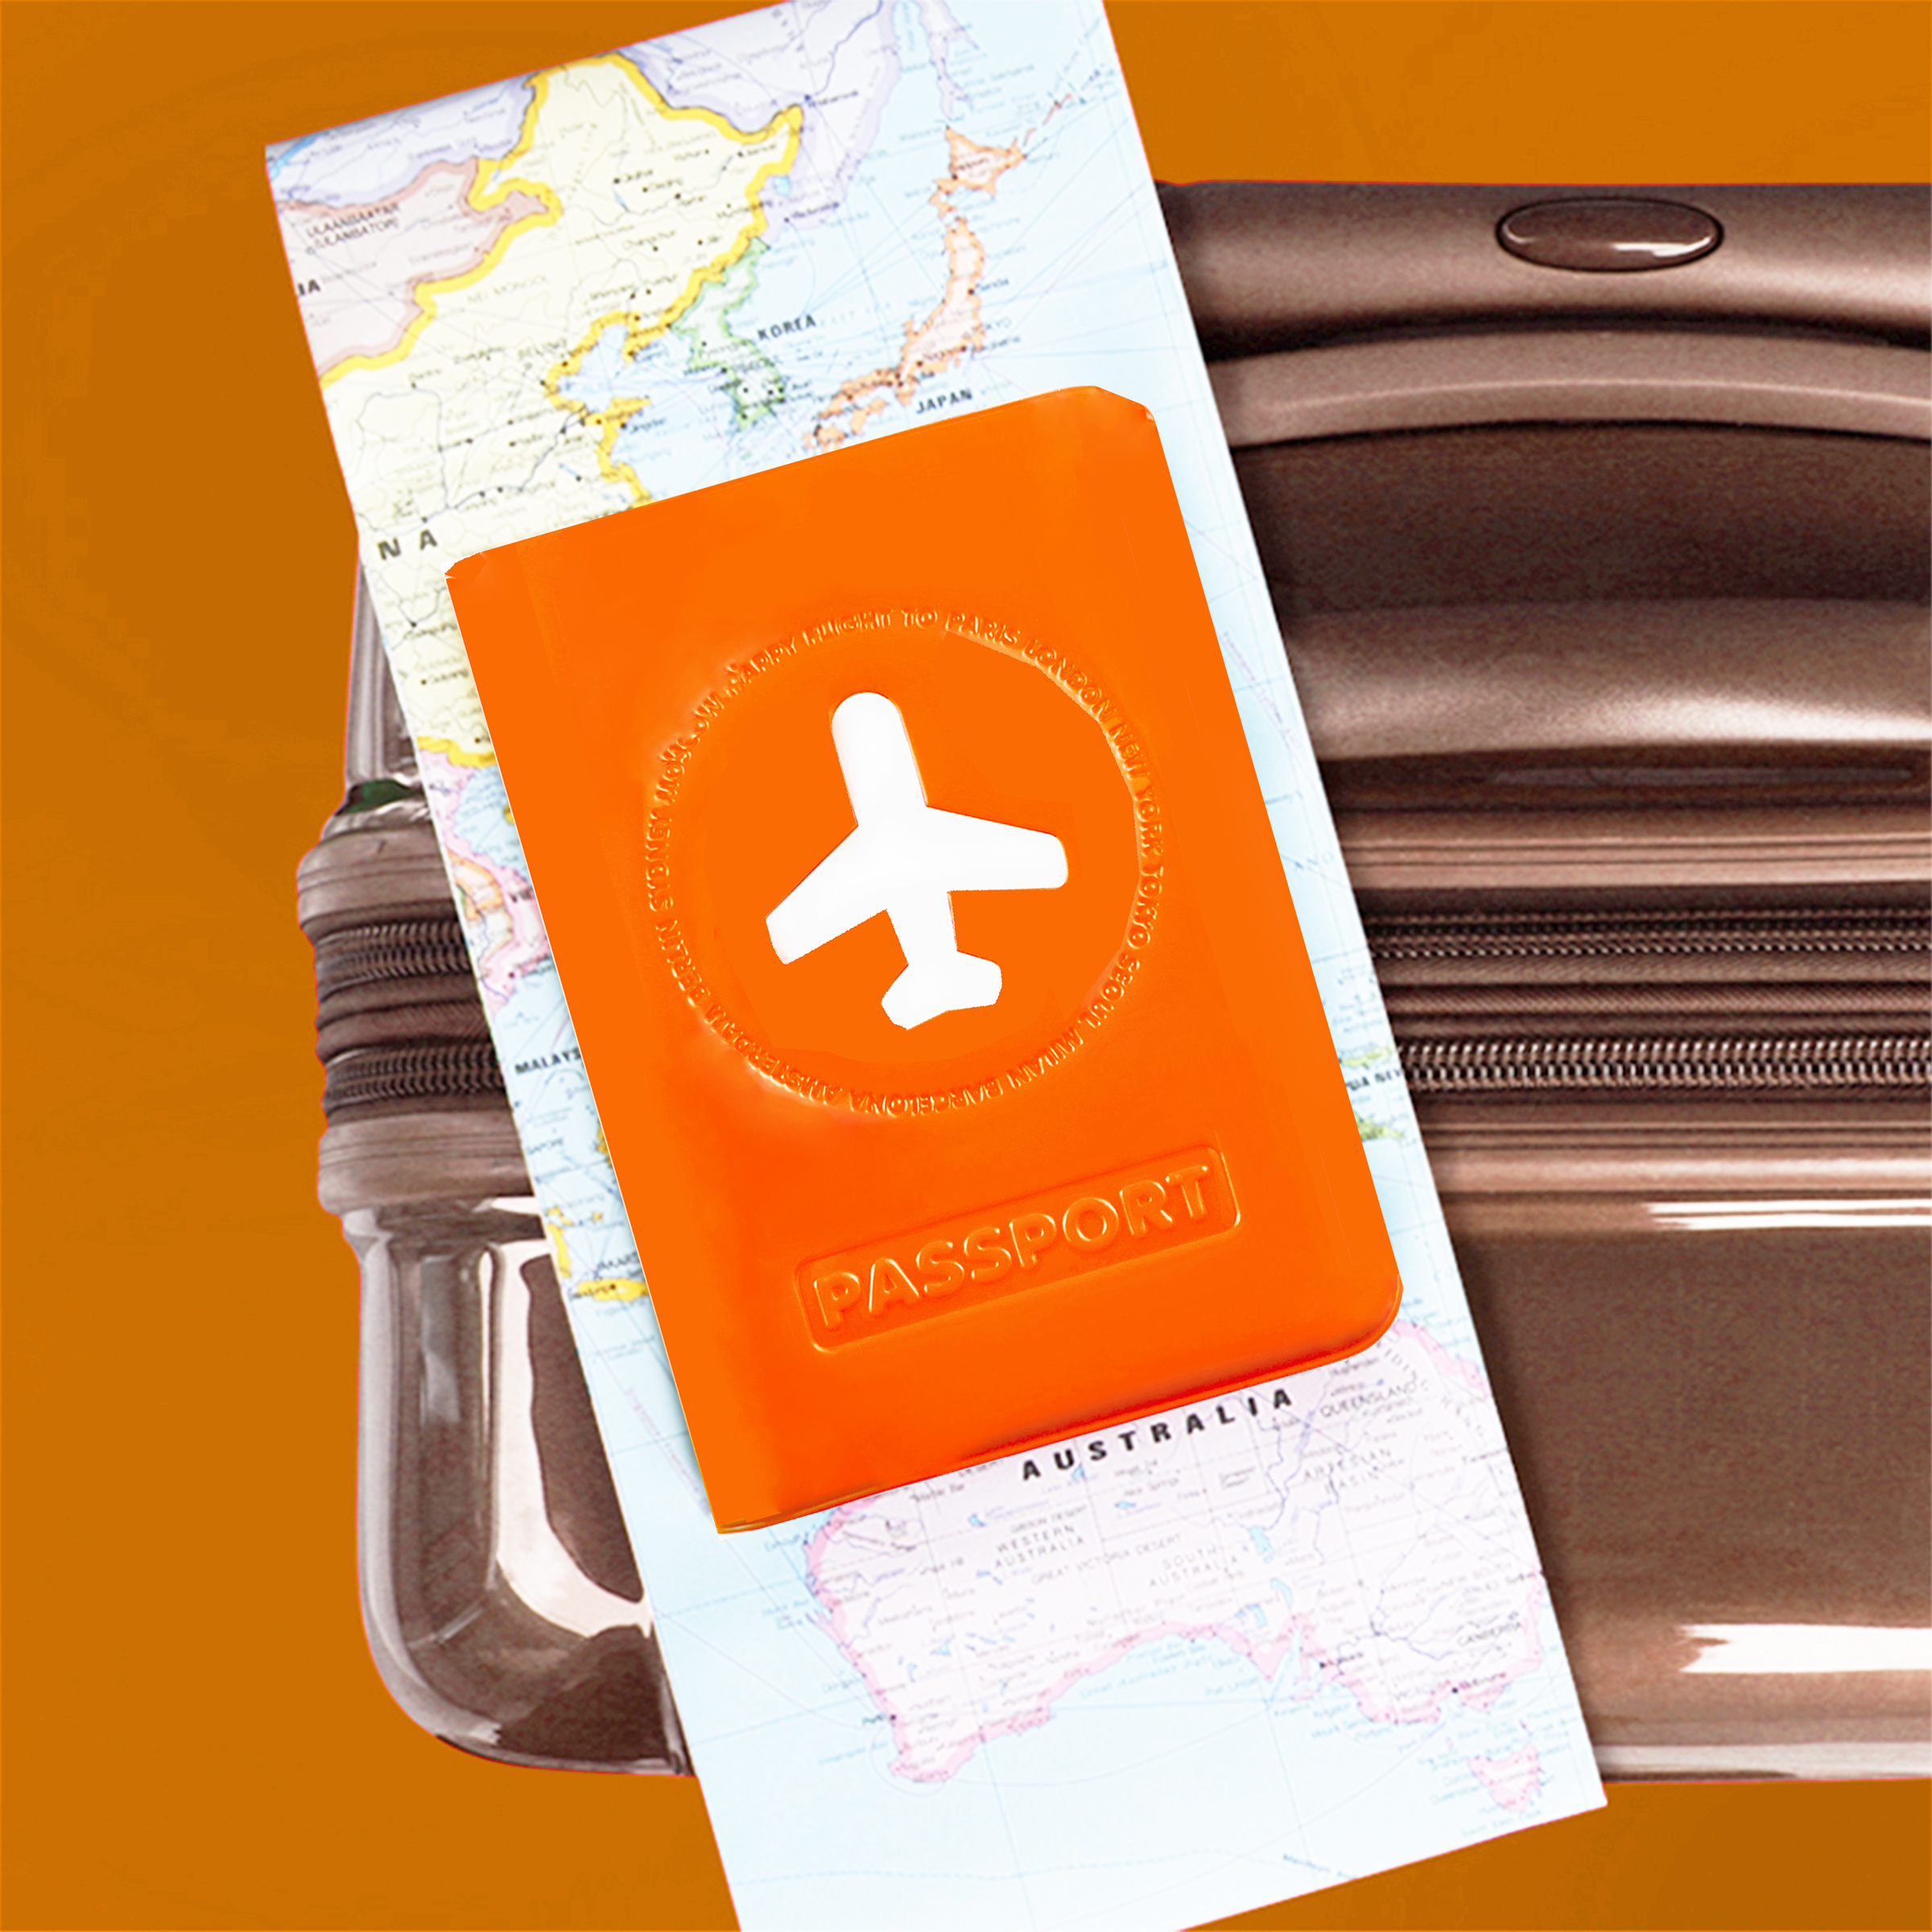 protège passeport en plastique orange brillant avec dessin avions blanc